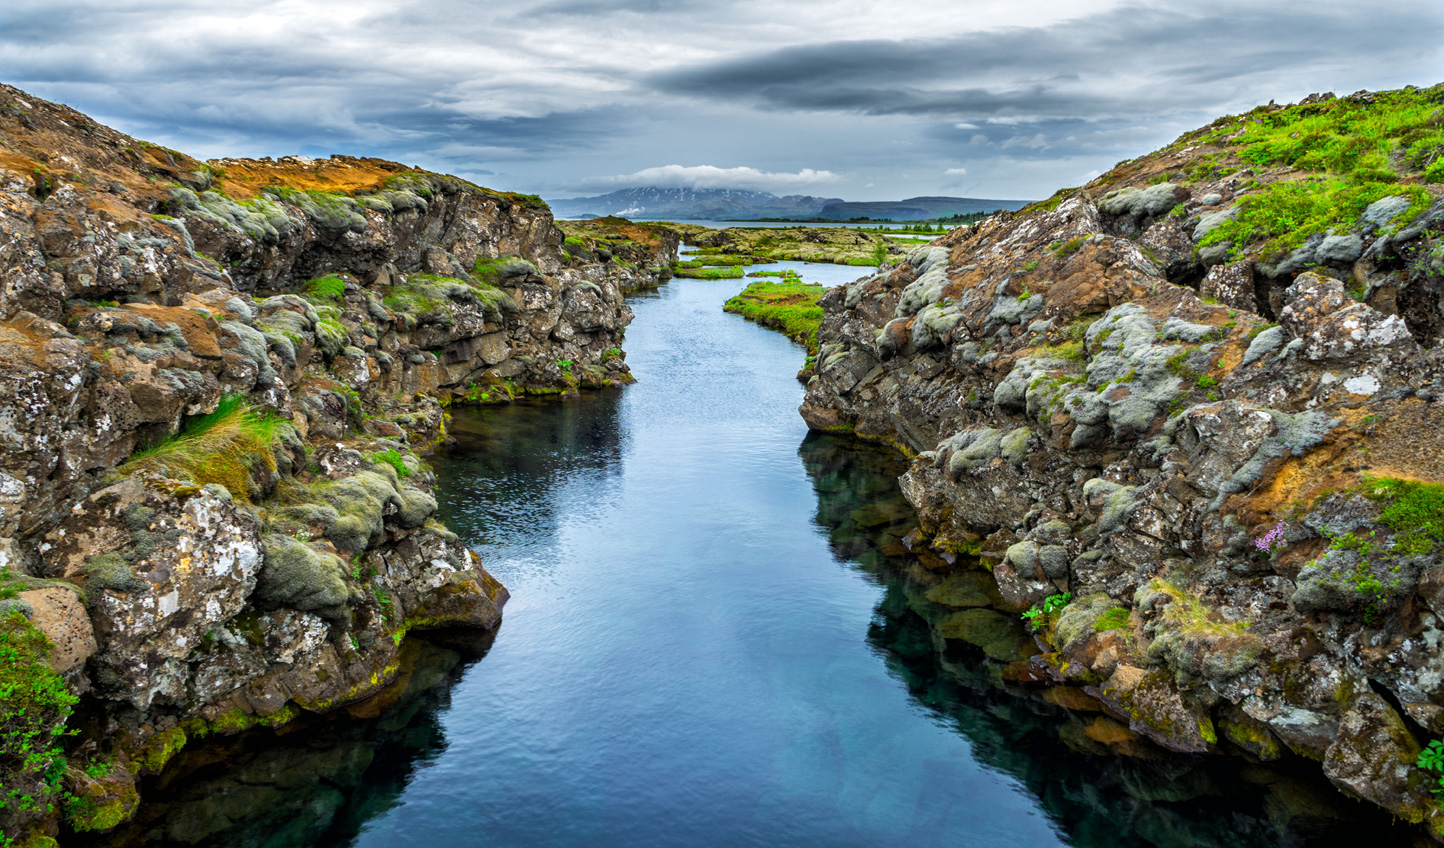 Dive into the rift between the American and Eurasian tectonic plates